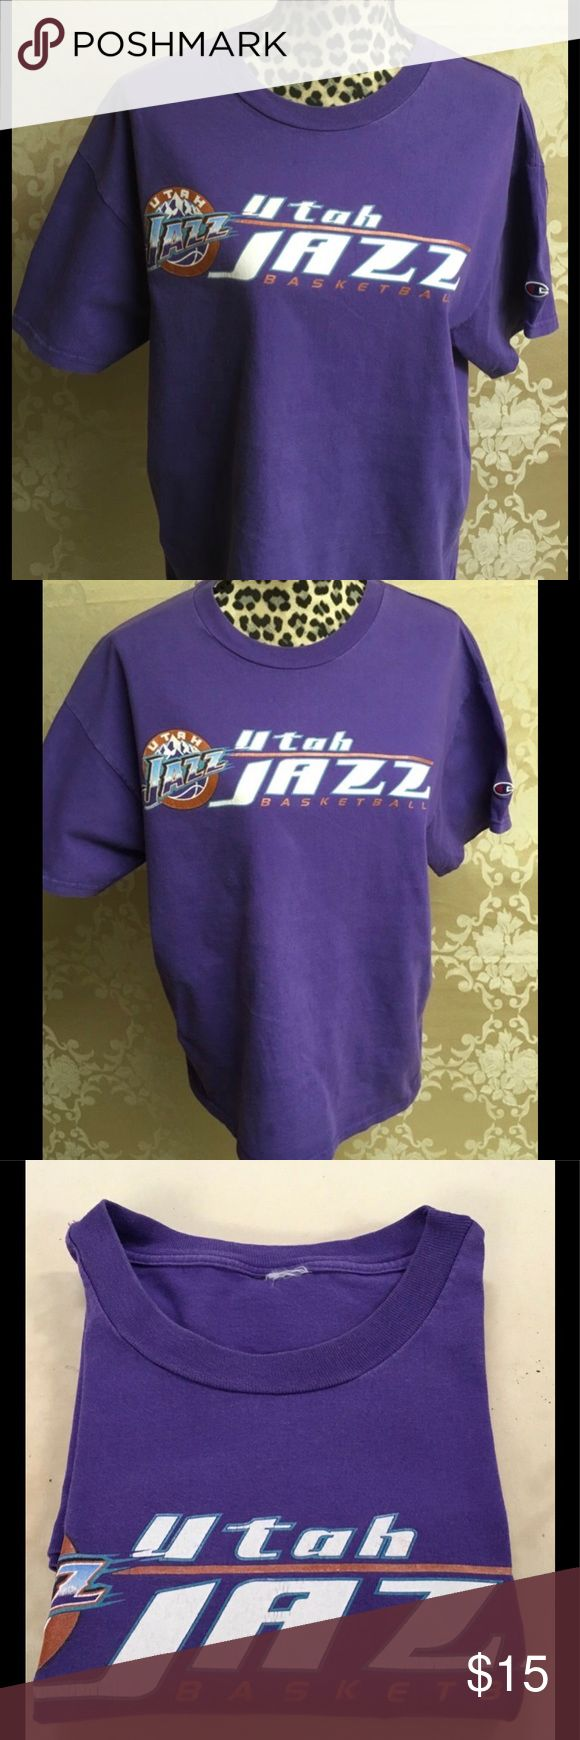 UTAH JAZZ TEE. Love this era of the Utah Jazz when their colors were purple and teal. Wish they'd go back to that. It was the Stockton/Malone play-off era when their great demise was Michael Jordan. Tag is missing but I'm sure it's an XL. There's some signs of wear and tear and lots of love but nothing major. *Note - I have it in my 14/16 section of wardrobe. NBA Tops